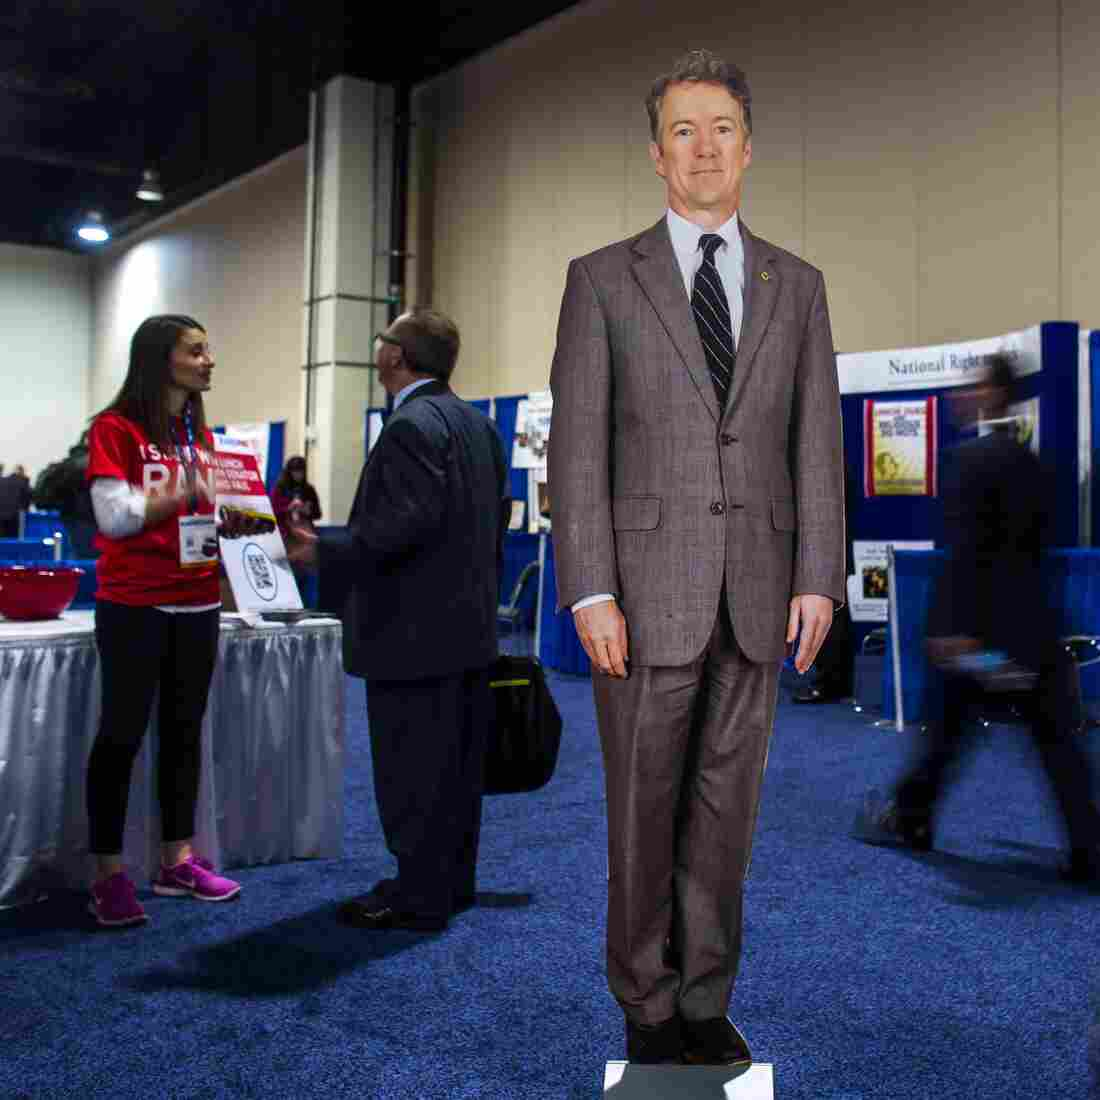 At CPAC this year, even Sen. Rand Paul's cardboard cutout was drawing attention. The Kentucky lawmaker was leading in the straw poll among attendees Friday.